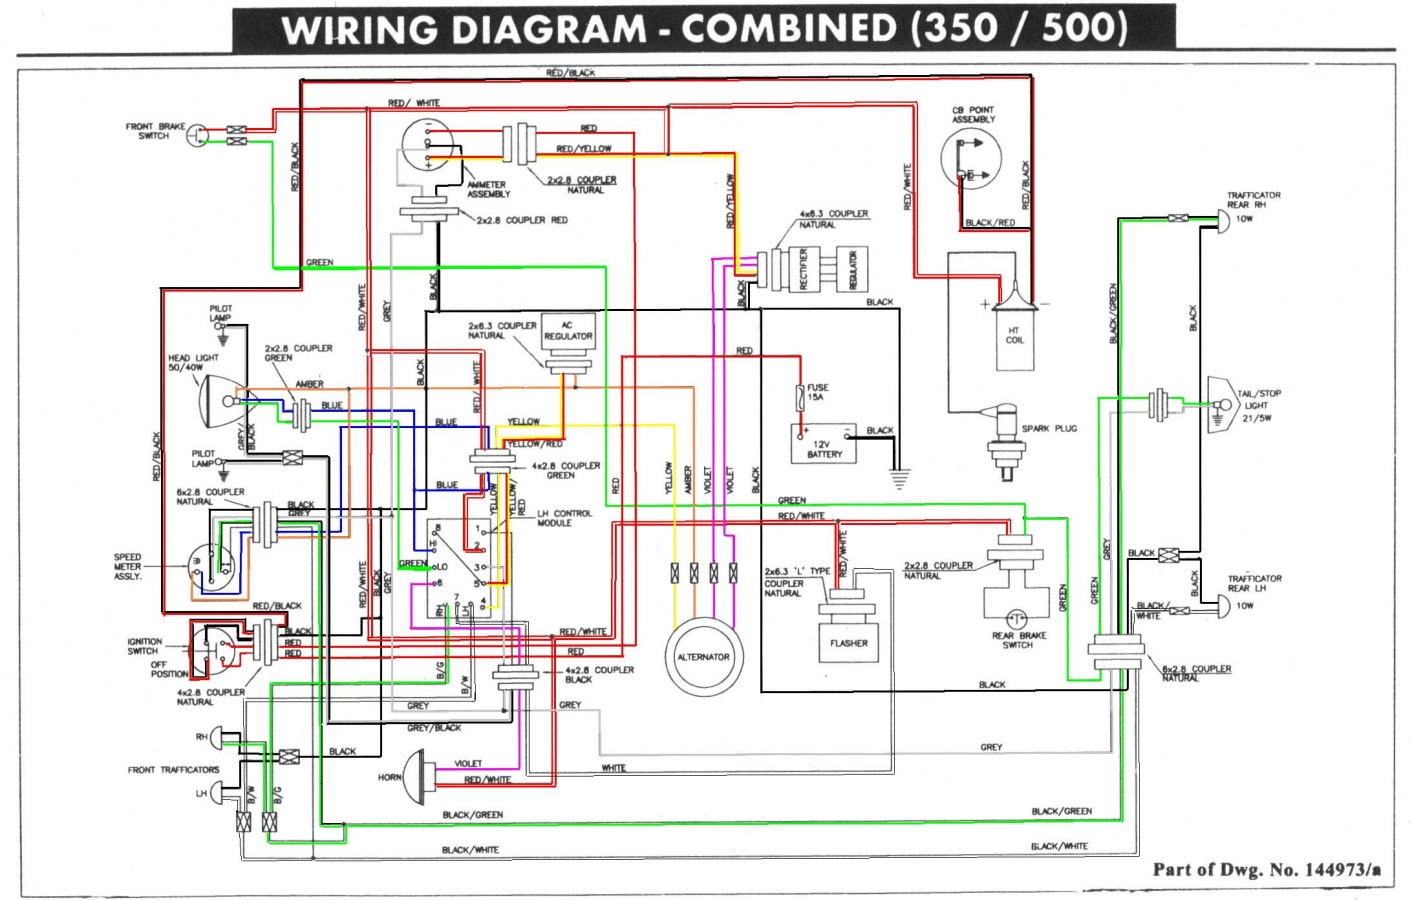 diagrams 875667 royal wiring diagrams royal enfield wiring dragster wiring diagram at n-0.co